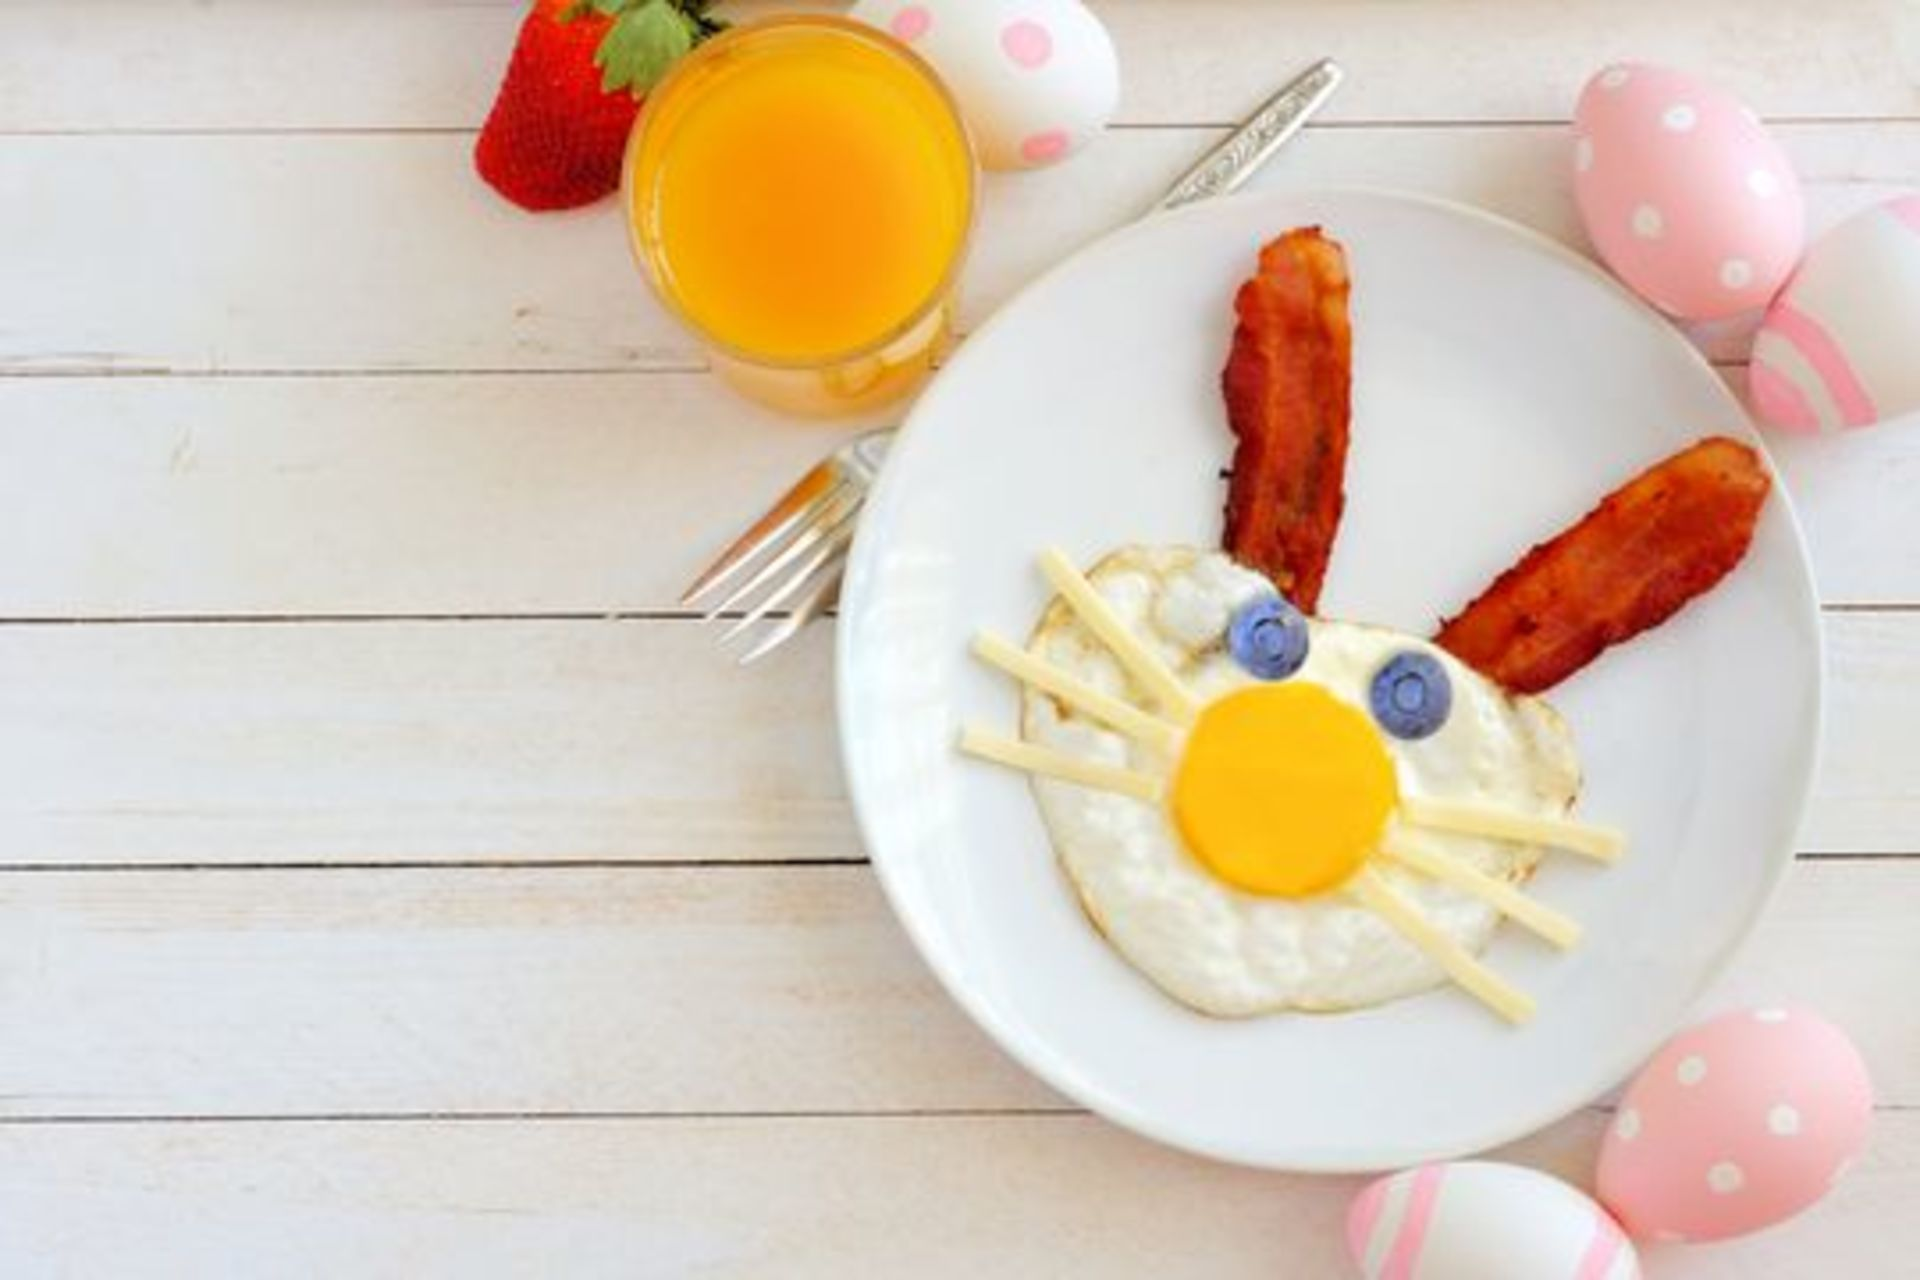 Looking for Easter brunch spots? Here's a roundup of what's happening across Brevard